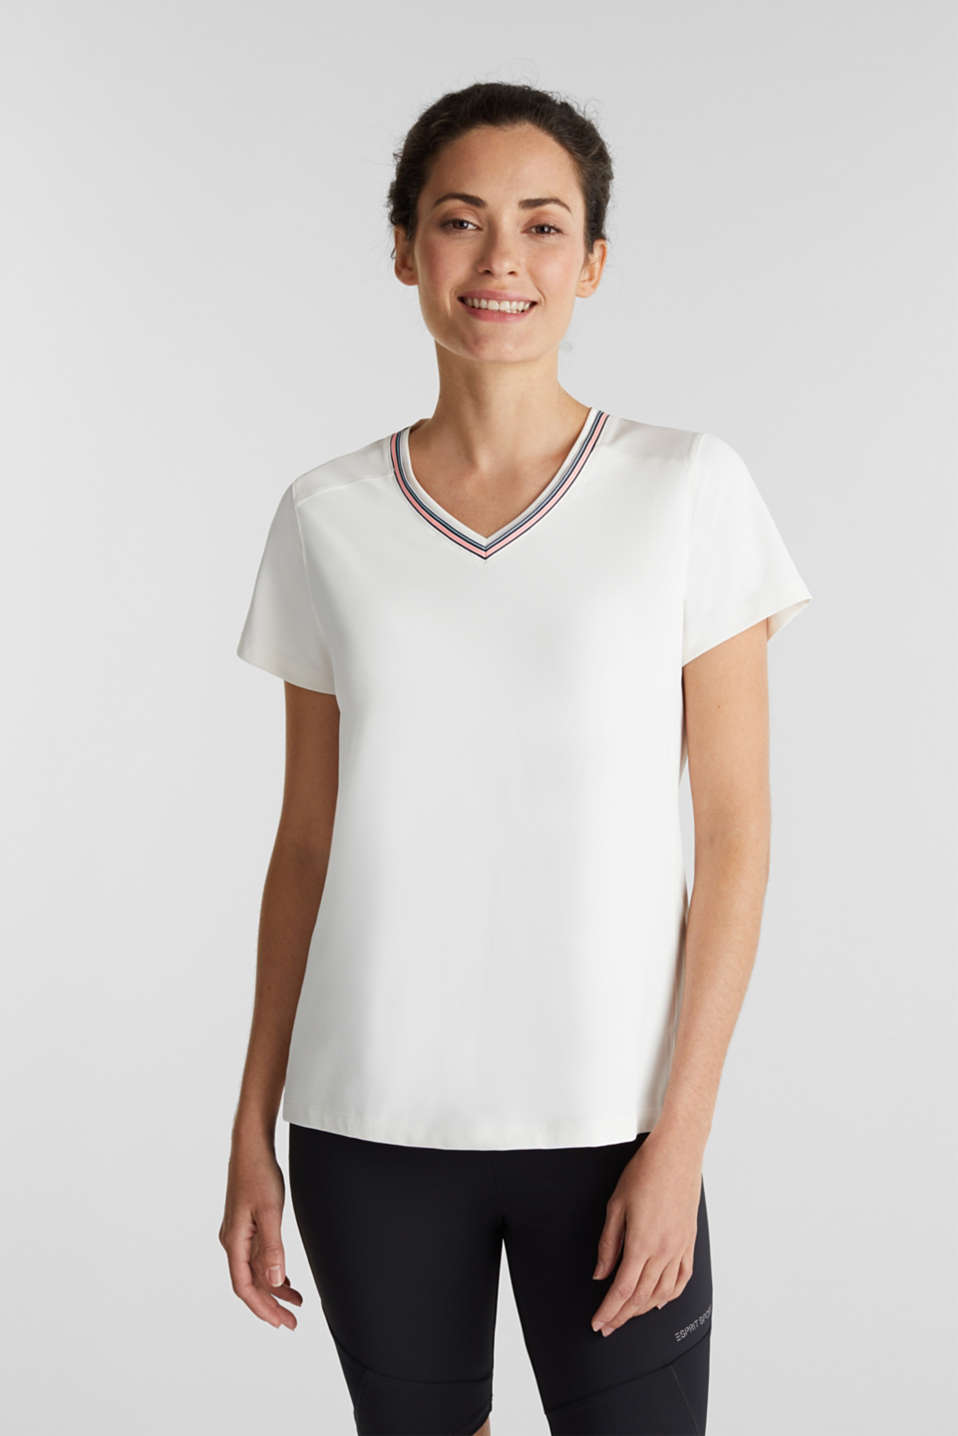 V-neck T-shirt with open-work pattern, E-DRY, OFF WHITE, detail image number 0